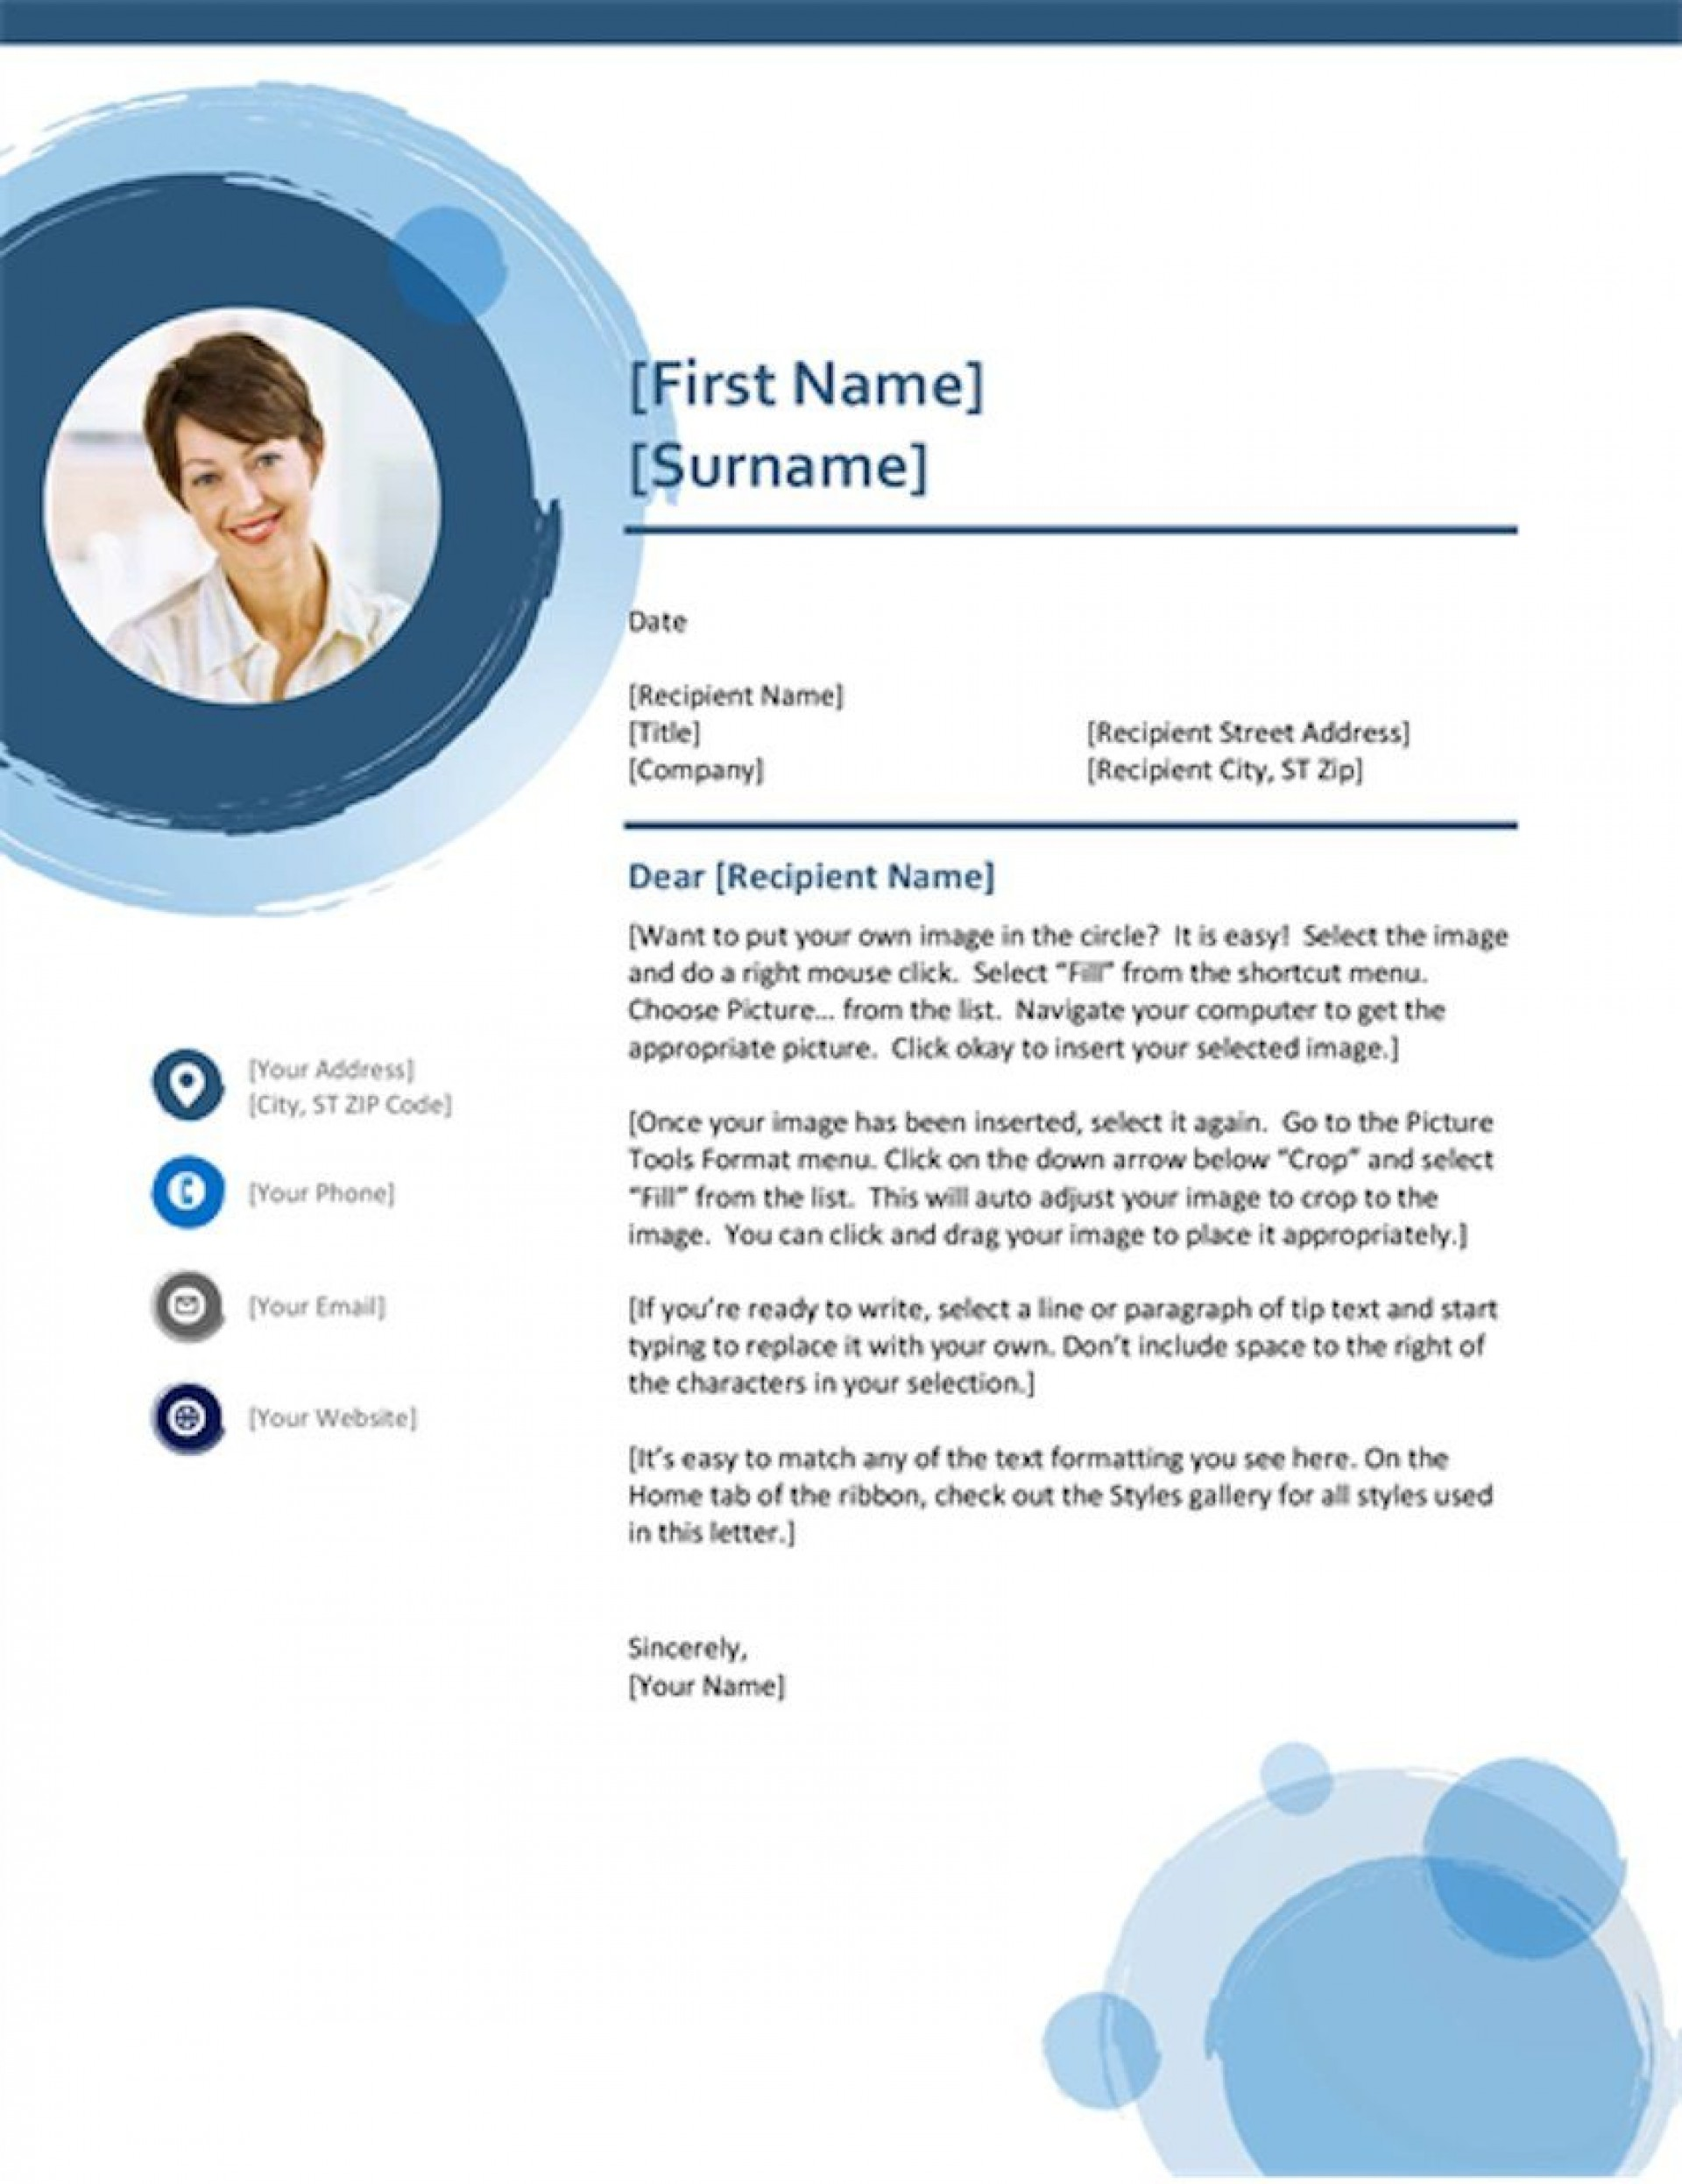 001 Stunning Microsoft Cover Letter Template High Def  Templates Free Resume Word Download 2010 Page1920